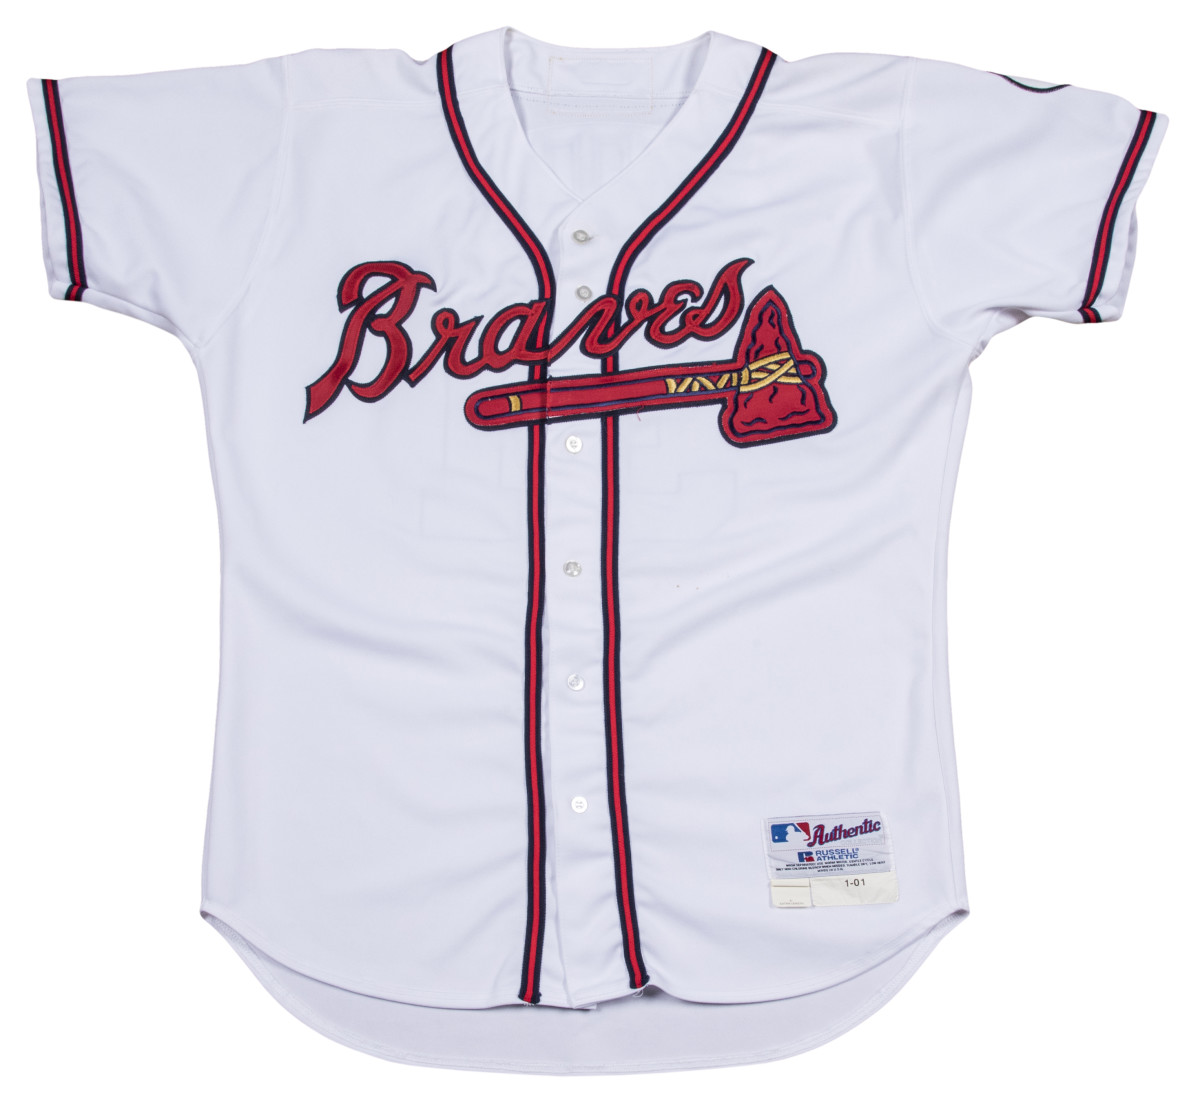 Greg Maddux jersey photomatched to 2001 NLCS.